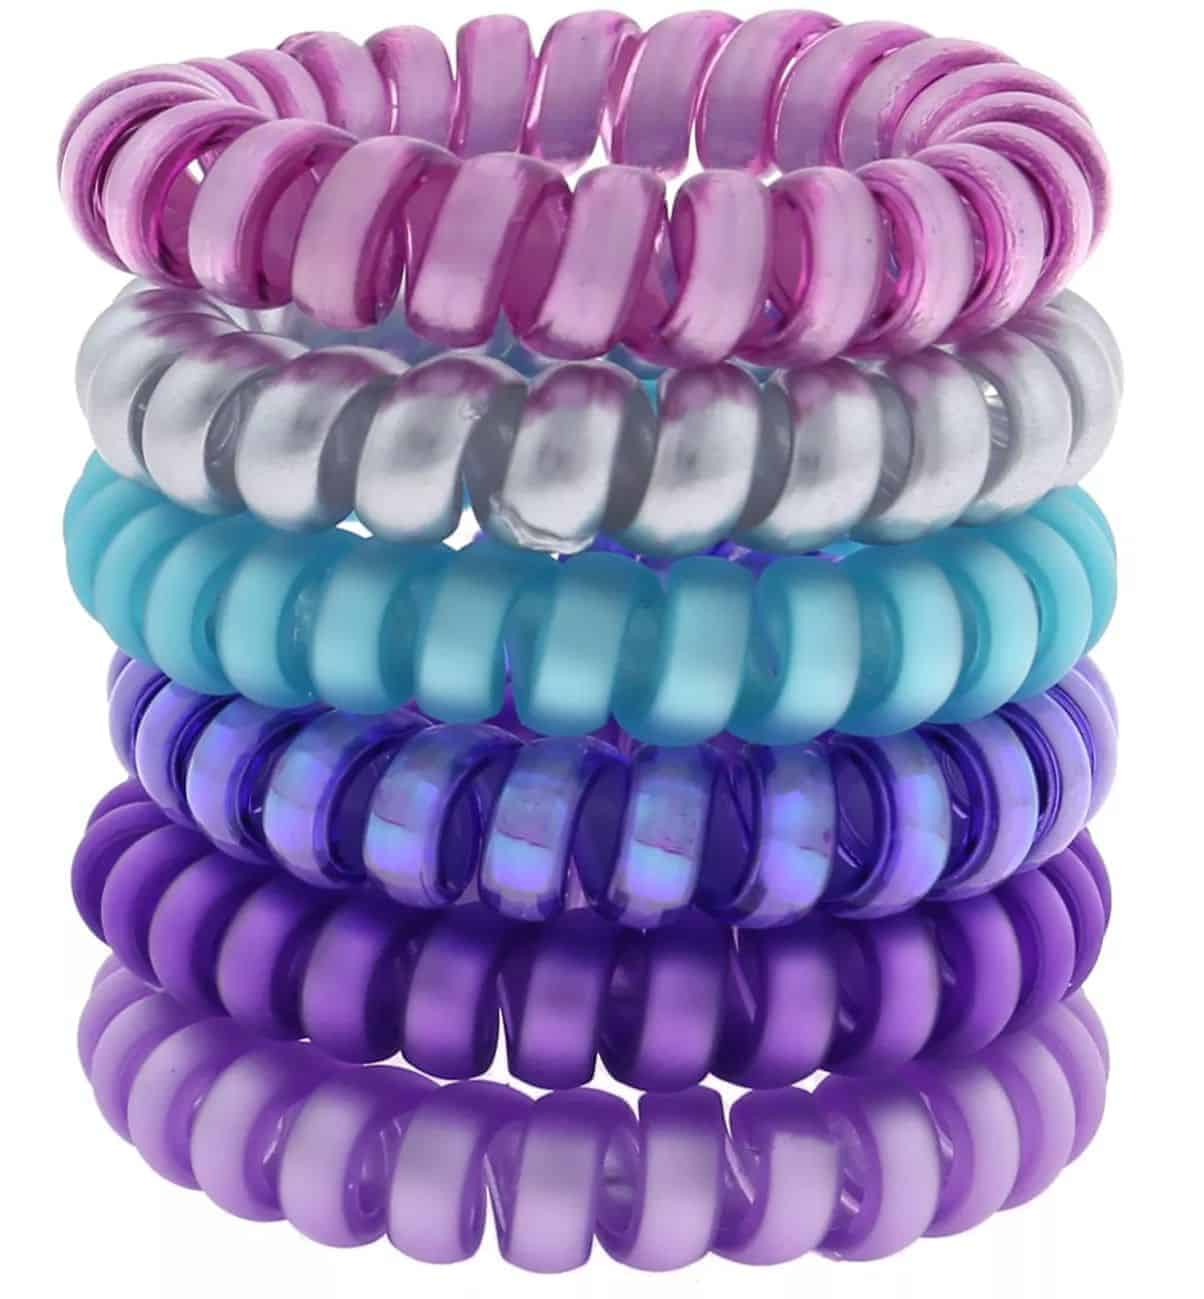 Girls-hair-ties-or-bracelets-stocking-stuffer